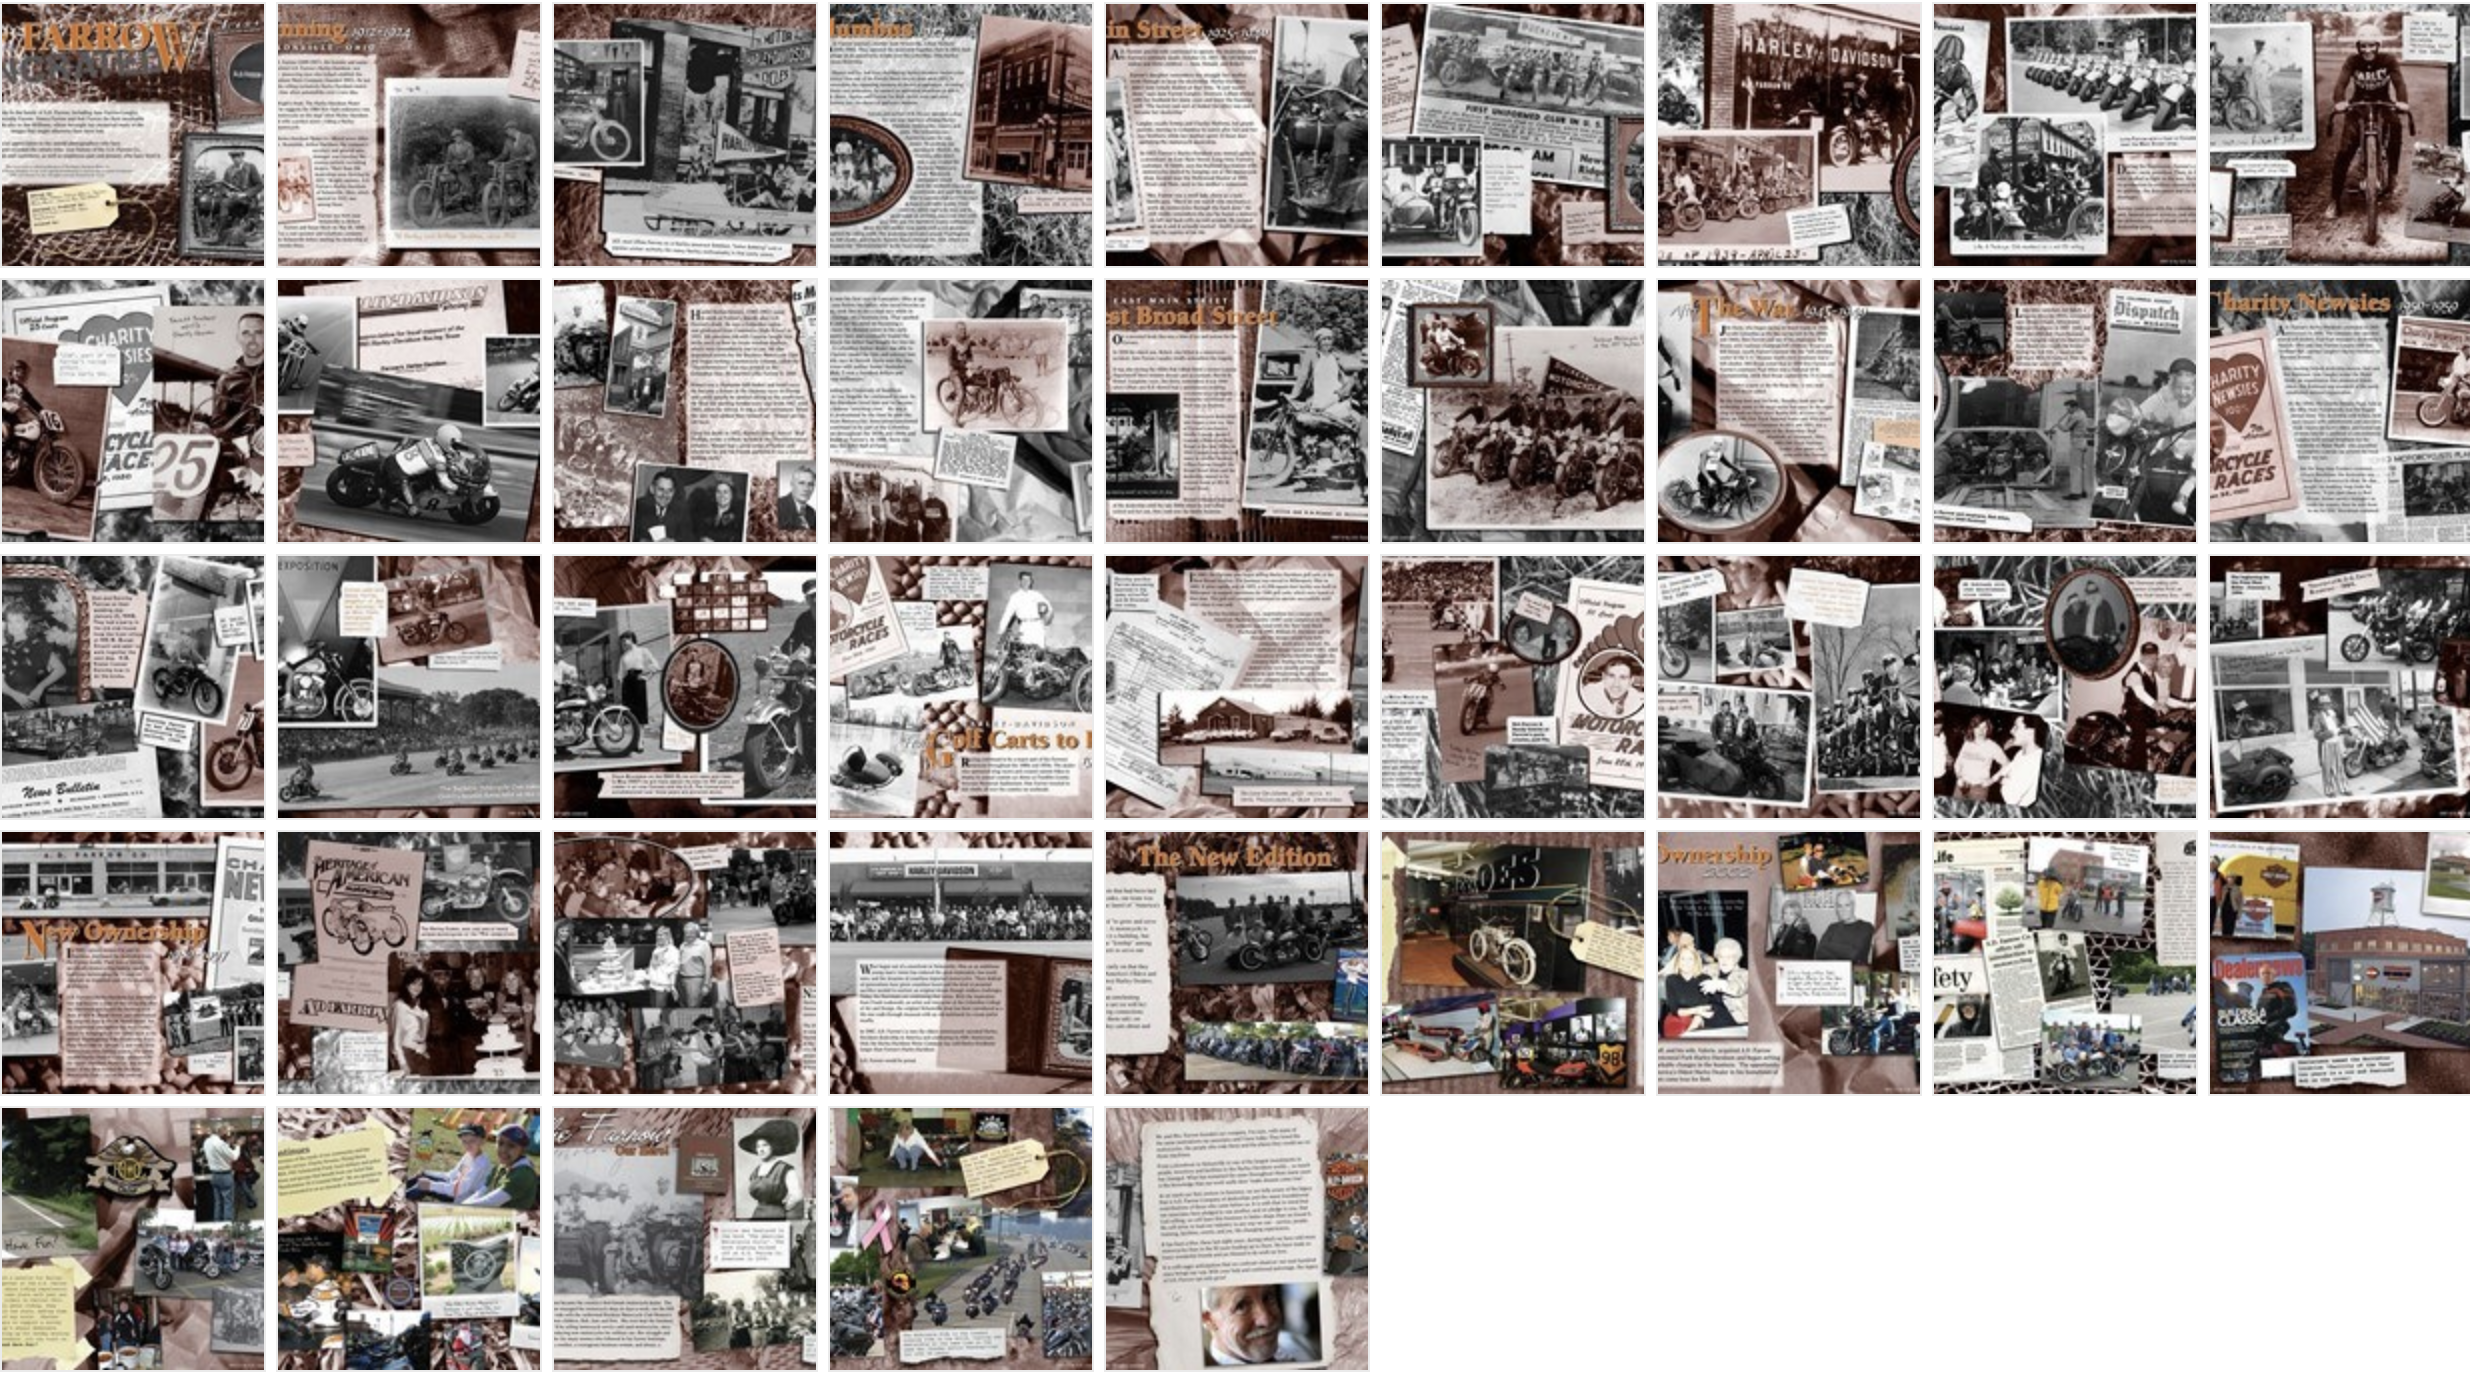 PAGES OF HISTORY AT FARROW HARLEY-DAVIDSON® DOWNTOWN